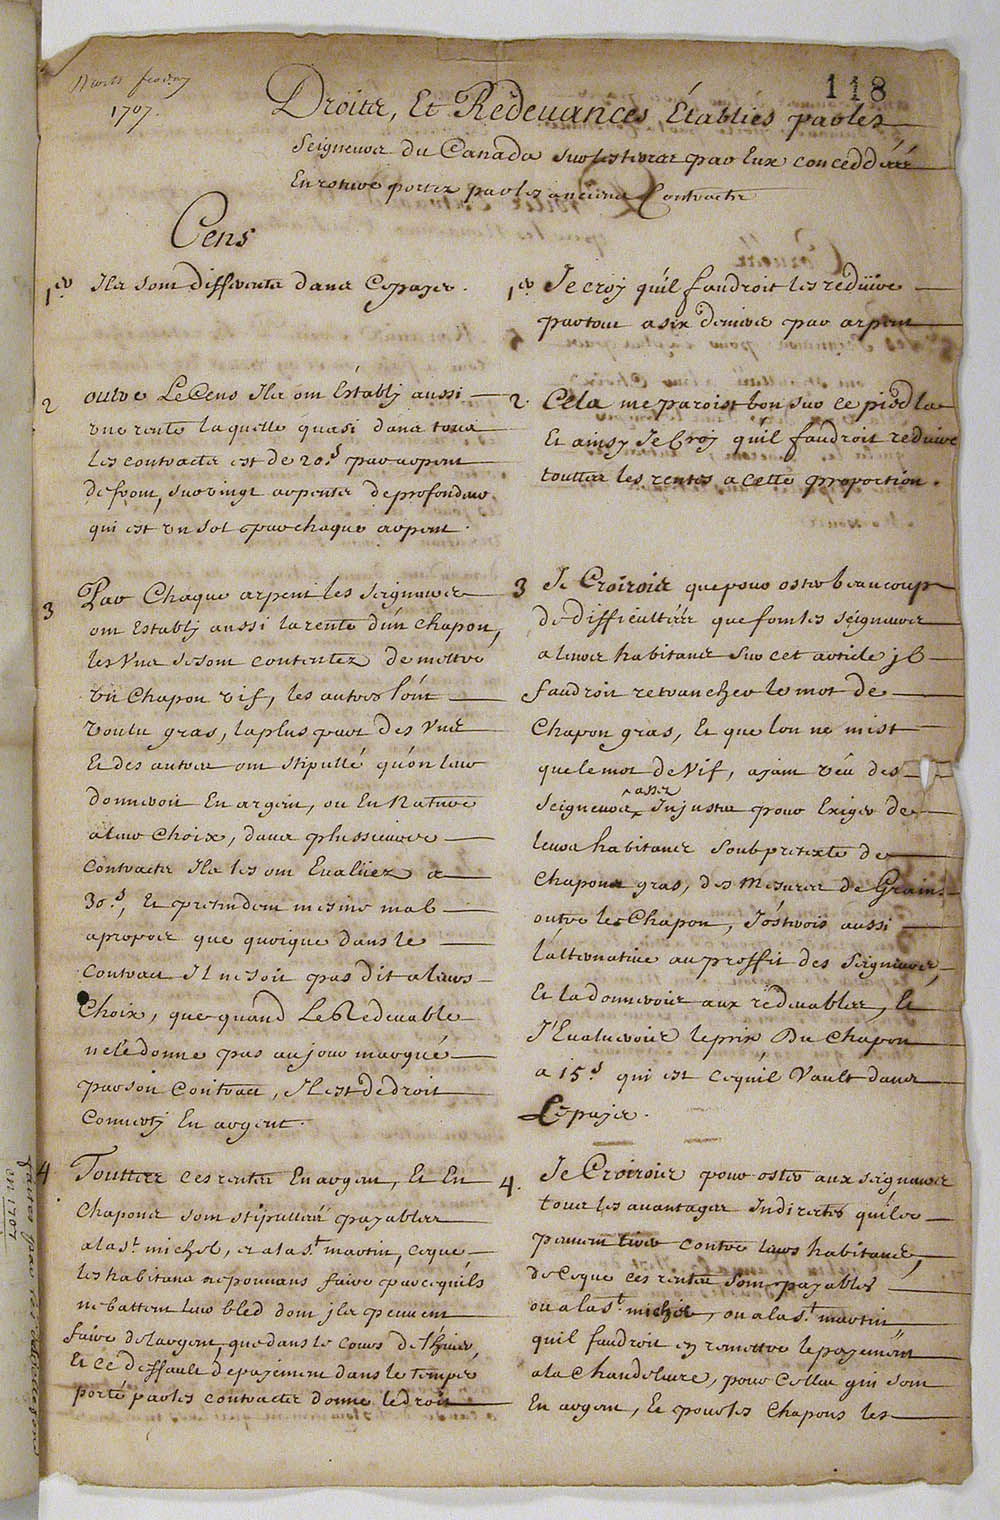 Report [of Intendant Jacques Raudot] proposing various changes to the rights and obligations established by the seigneurs of Canada, ca. 1707, FR CAOM COL C11A 27 fol. 118-119vo